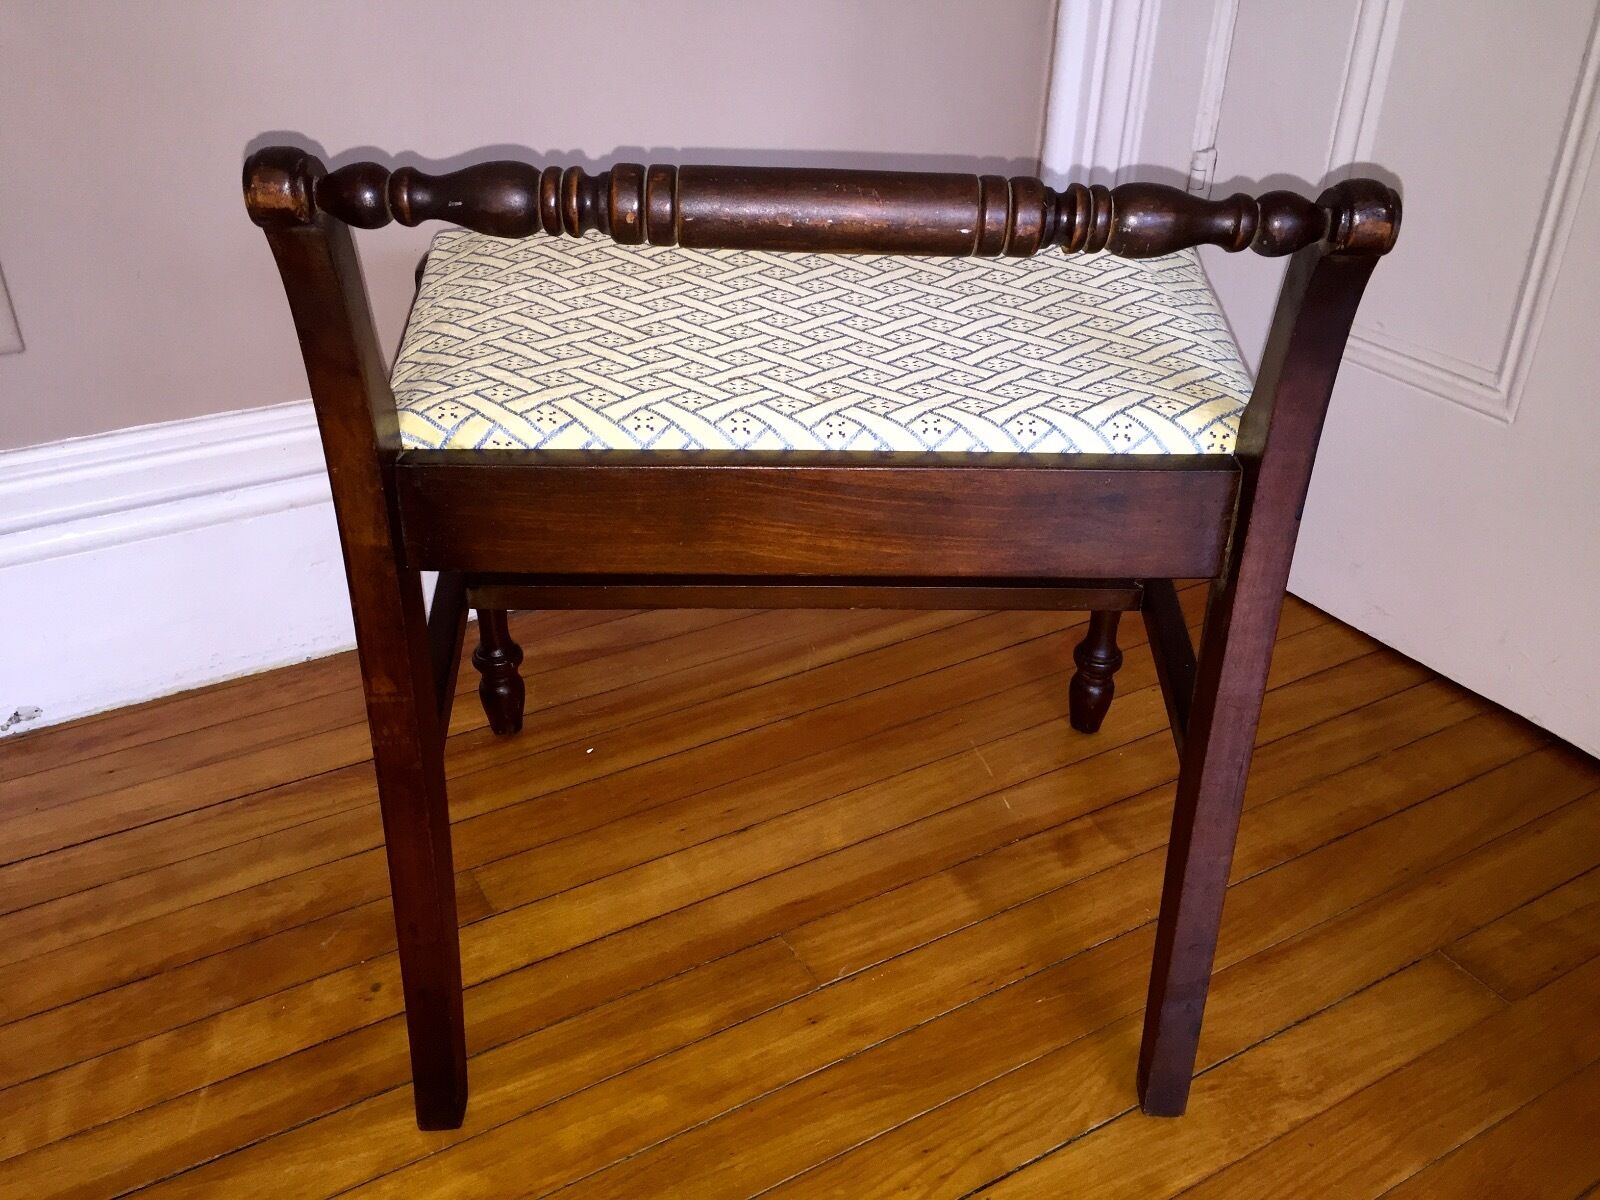 Antique Vintage Vanity Piano Bench New Upholstered Seat Turned Legs Picclick